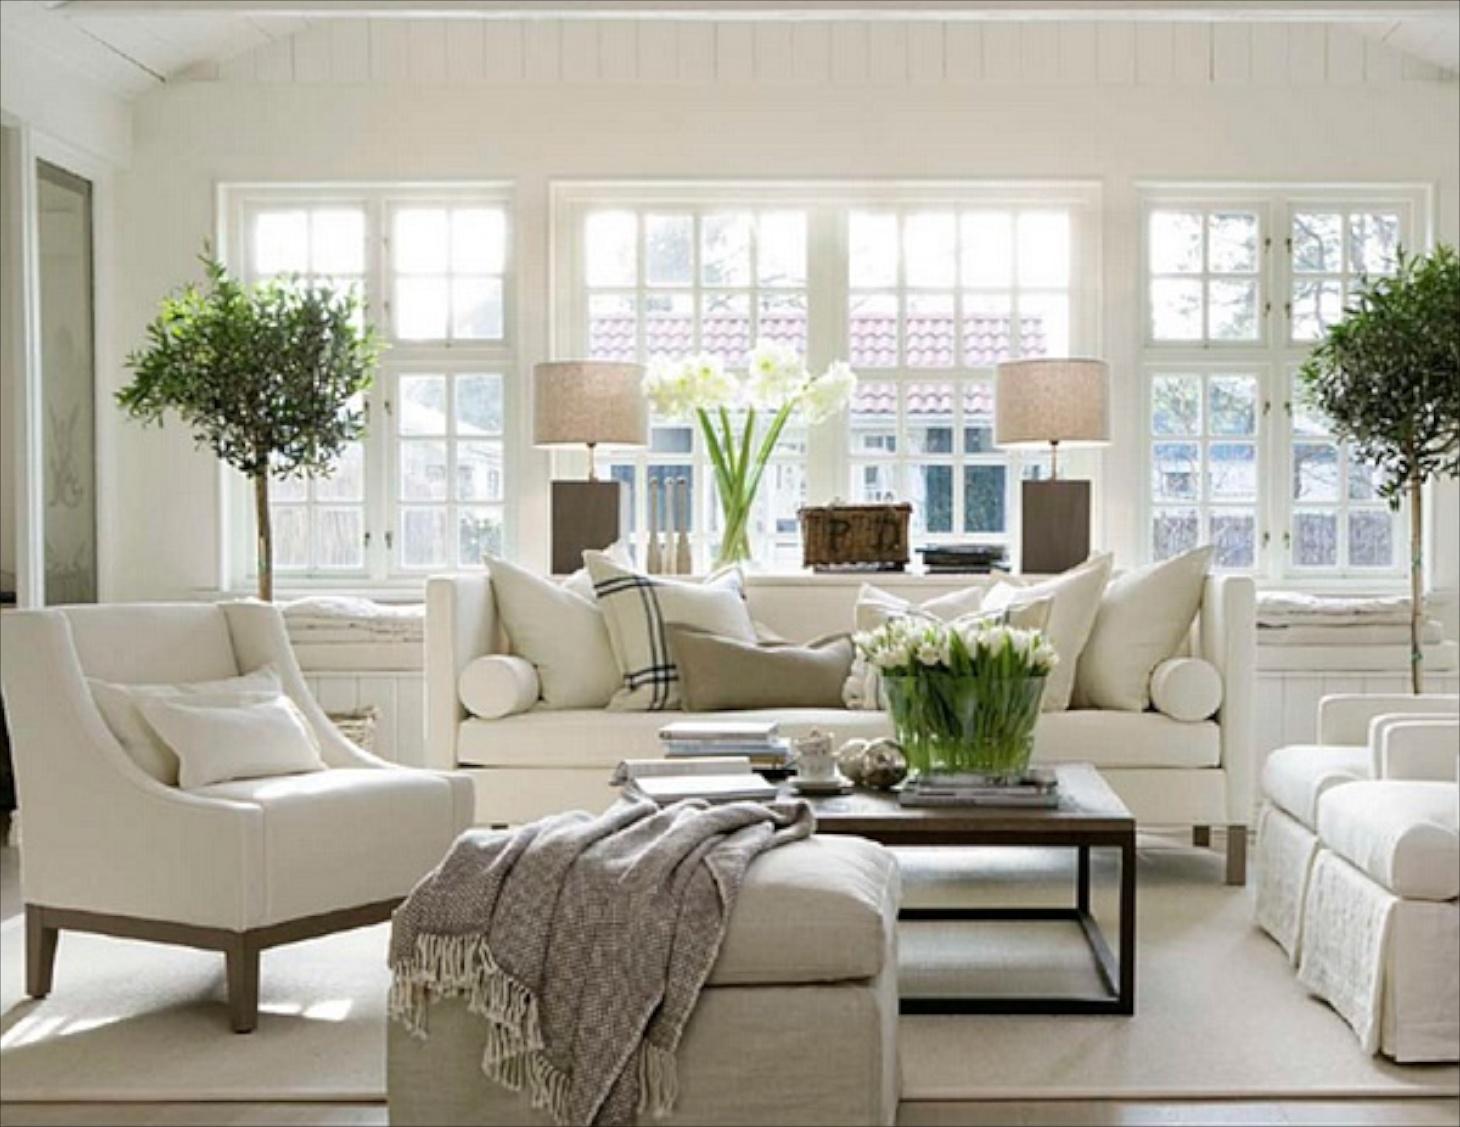 22_Cozy-Traditional-Living-Room-Indoor-Plant-Modern-White ...